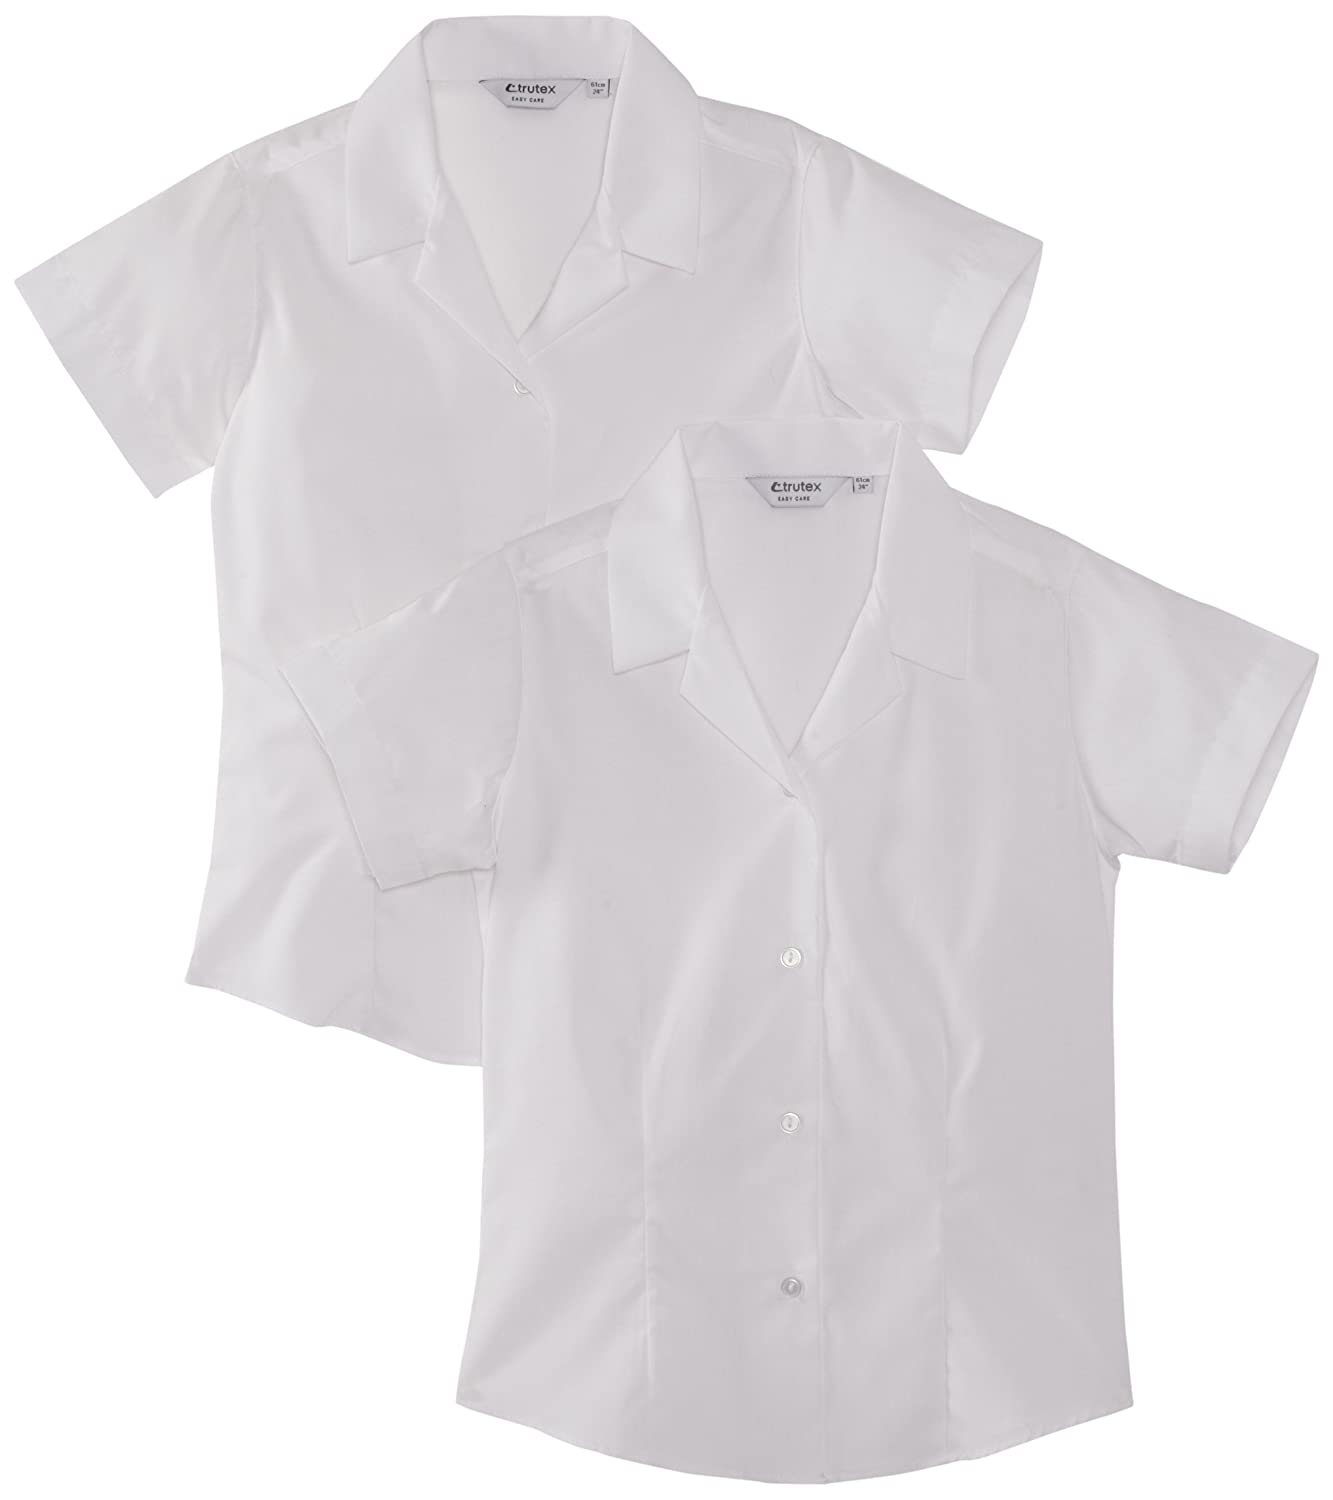 Trutex Limited Girl's Pack of 2 Easy Care Plain Blouse